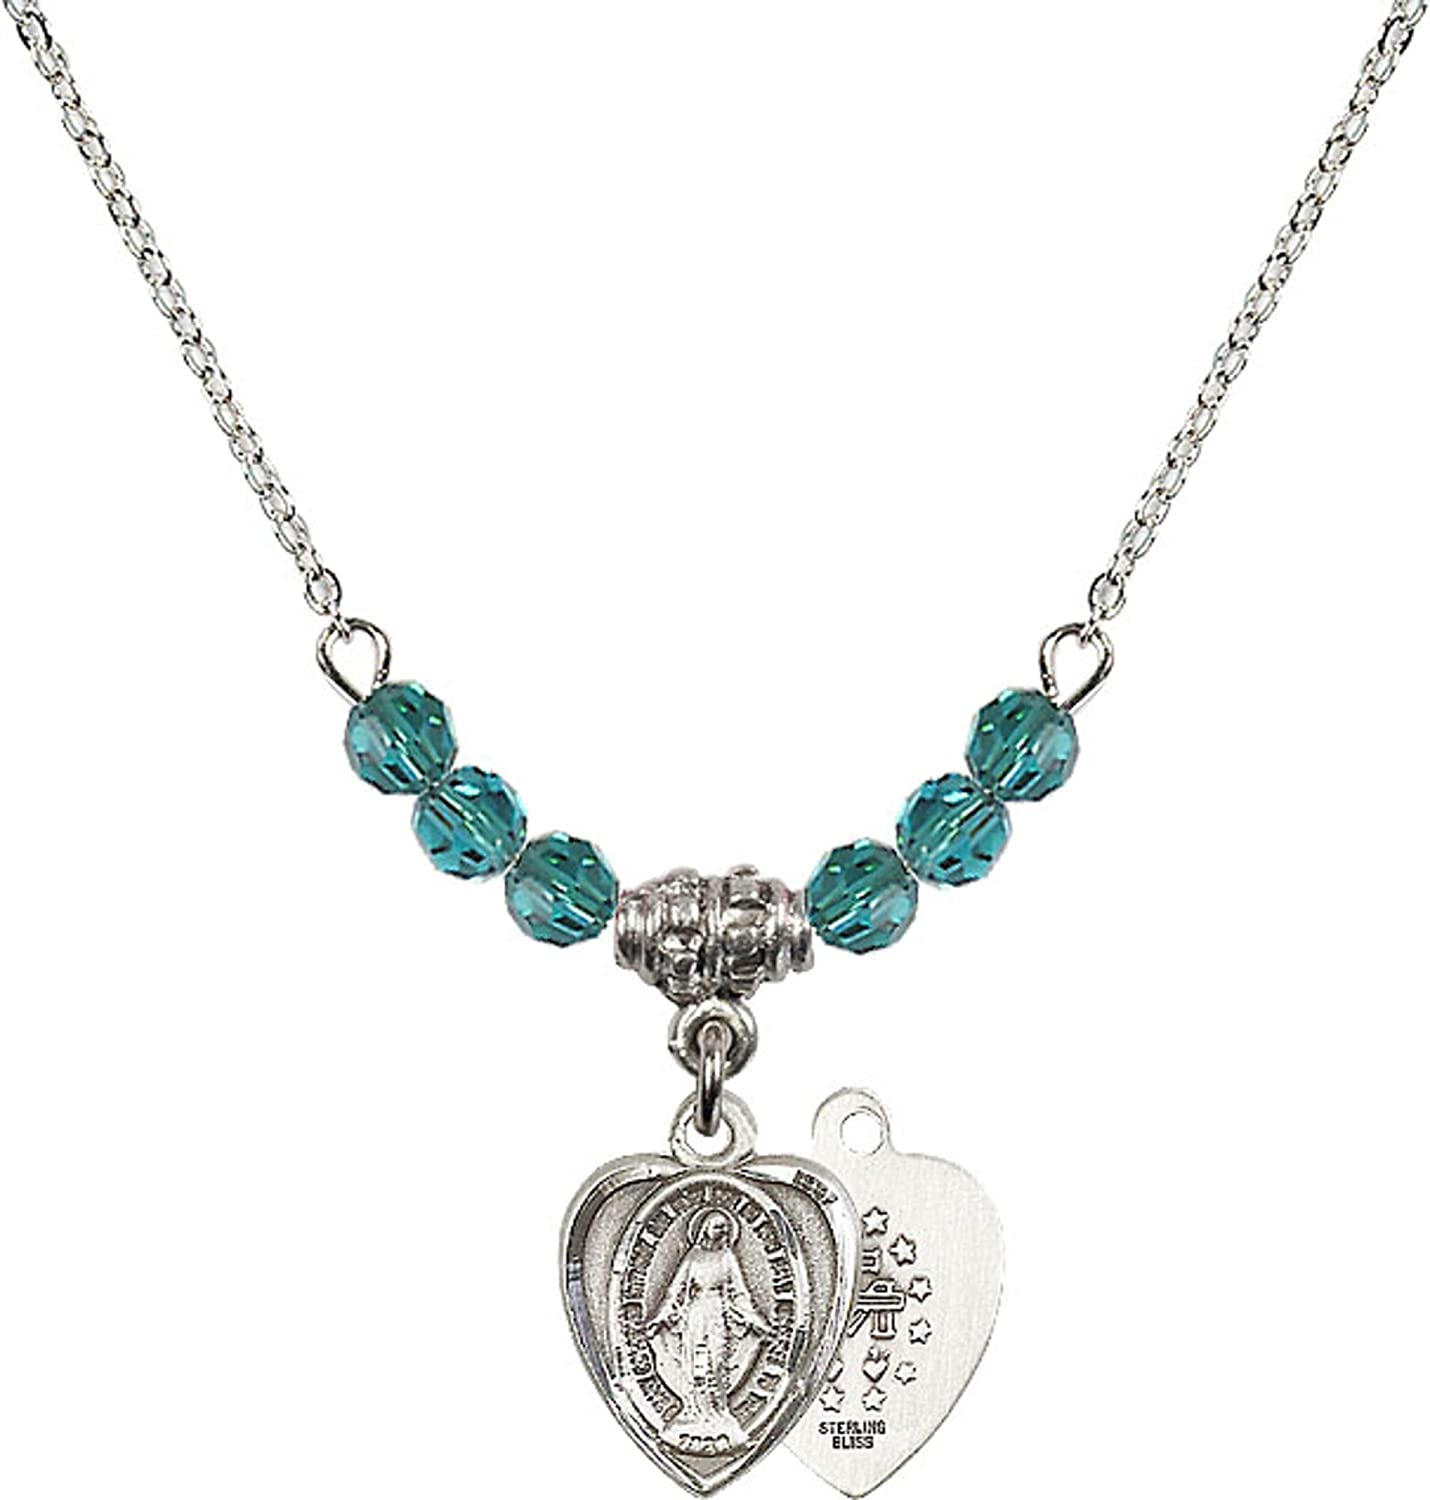 Bonyak Jewelry 18 Inch Rhodium Plated Necklace w// 4mm Blue December Birth Month Stone Beads and Miraculous Charm